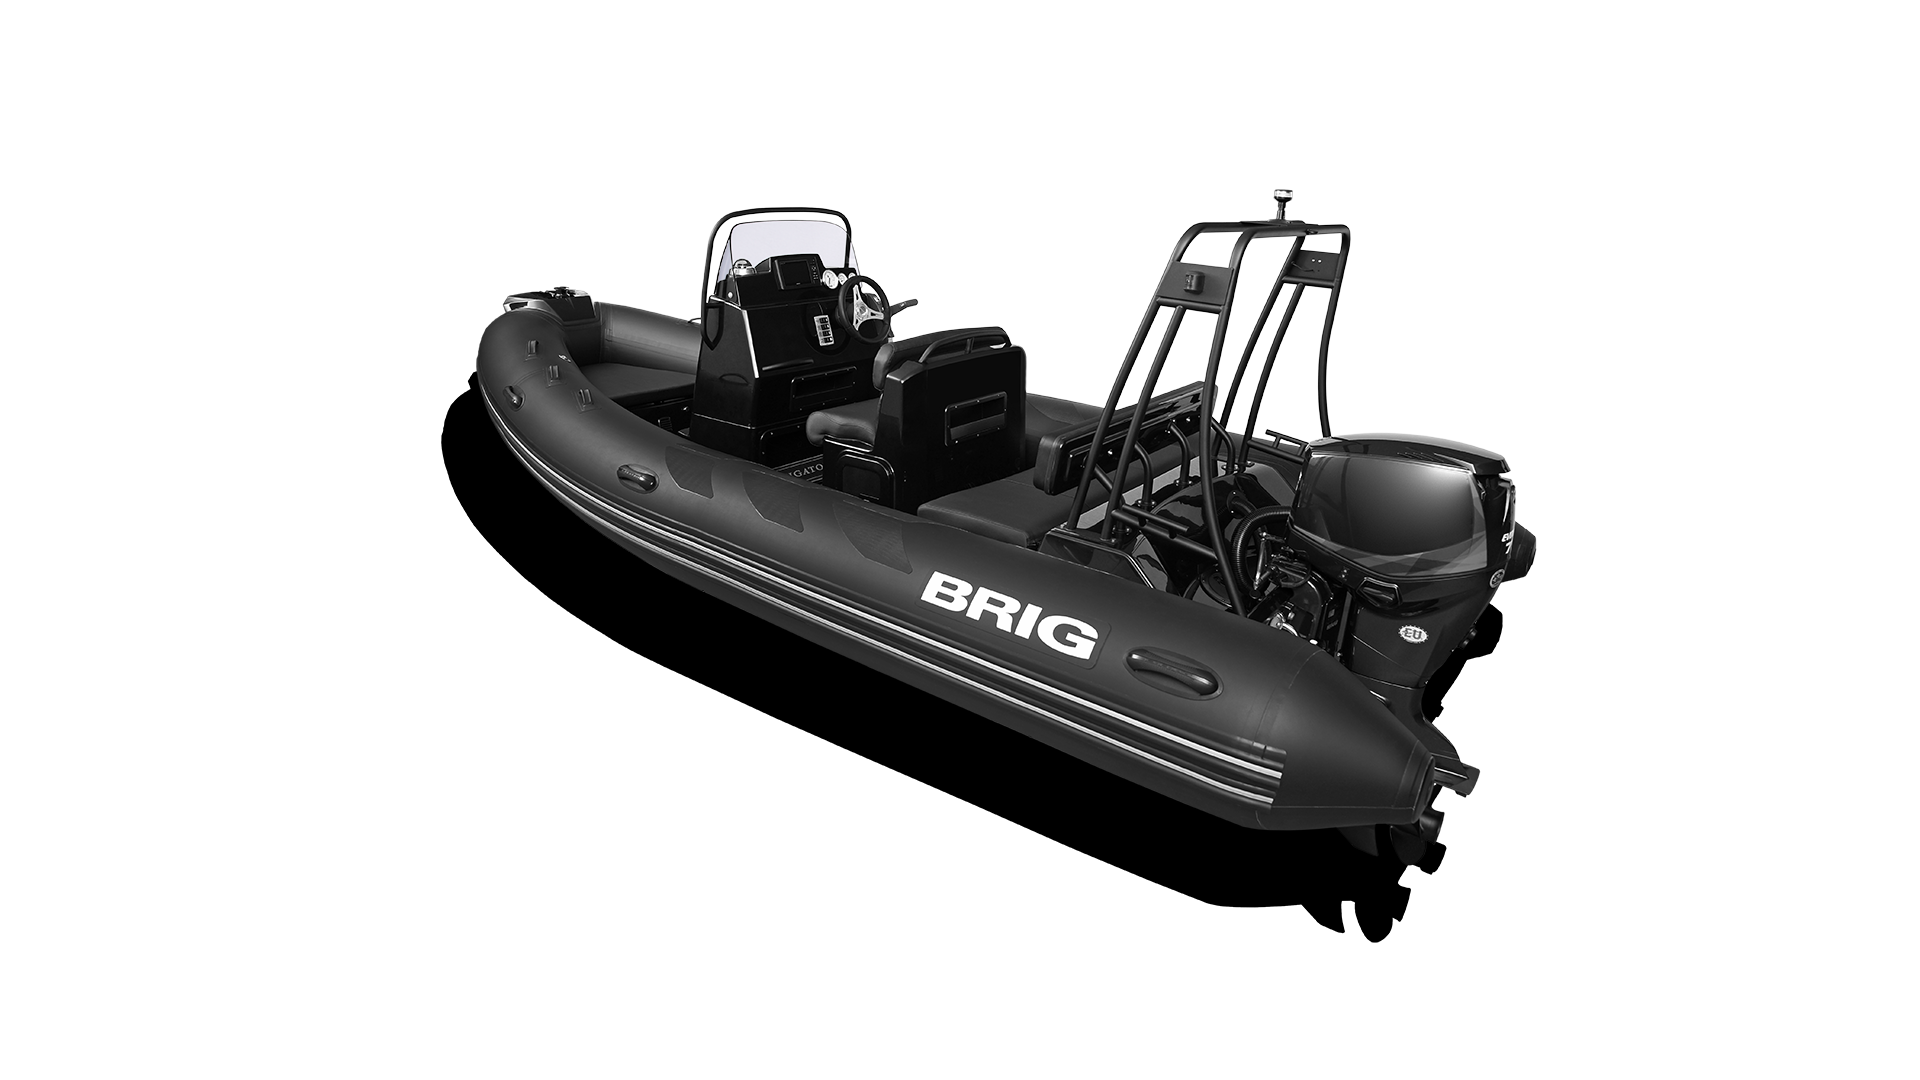 Navigator 520 Rigid Inflatable Boat